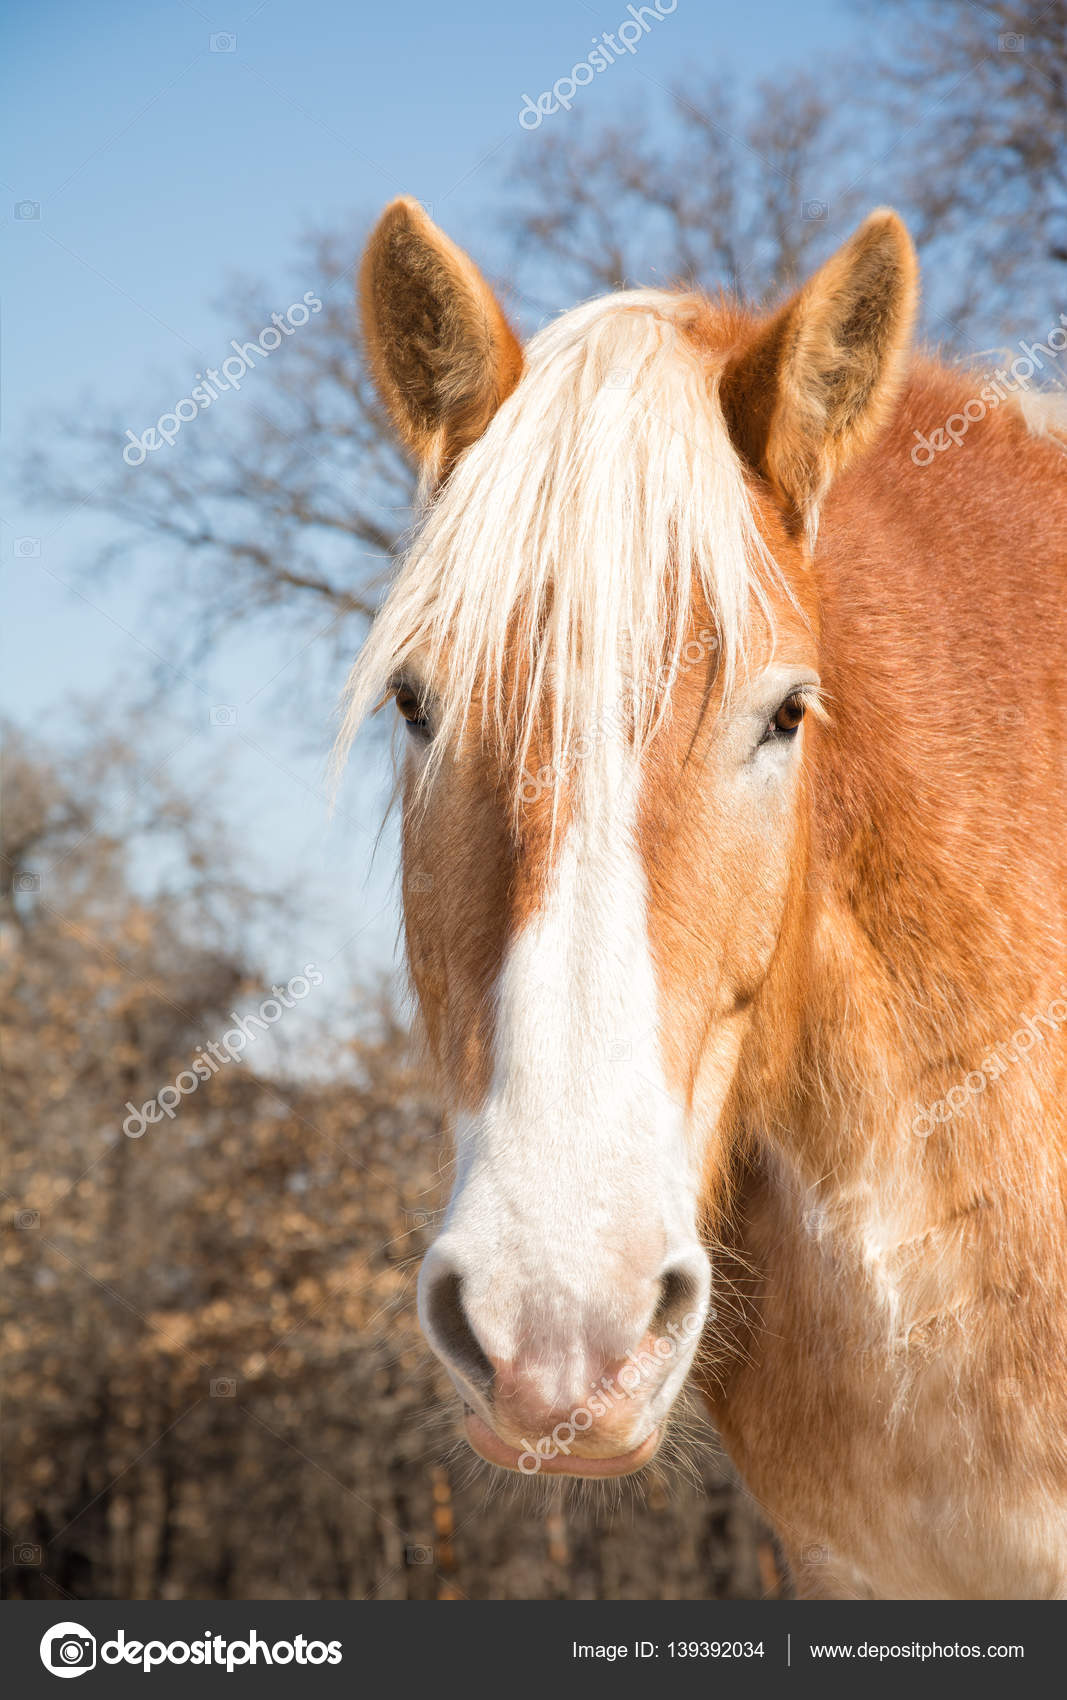 Belgian Draft Horse Head On Looking At The Viewer With A Curious Expression Stock Photo C Okiepony 139392034